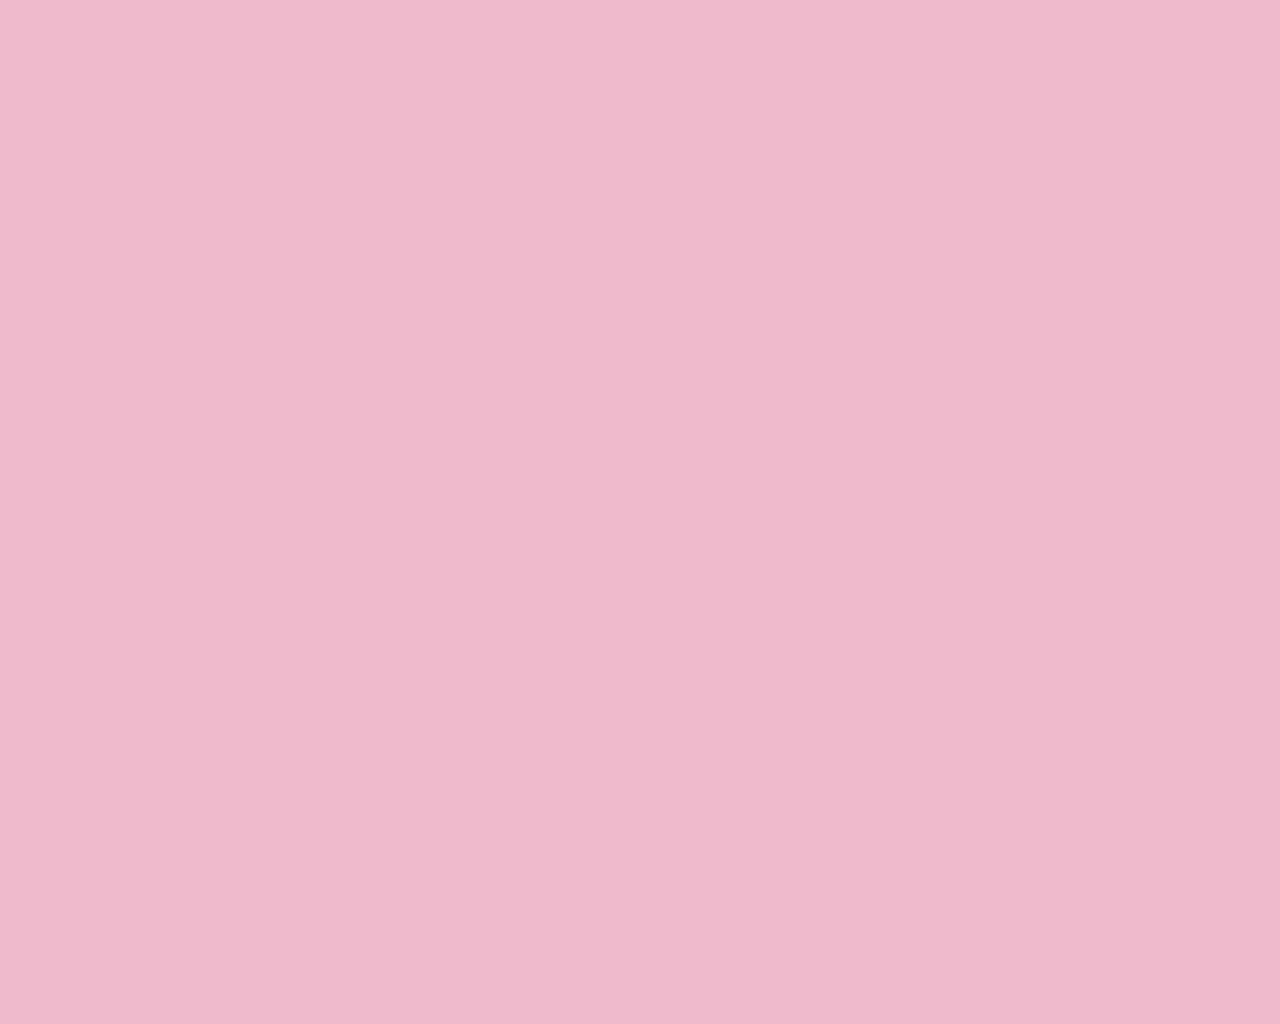 1280x1024 Cameo Pink Solid Color Background